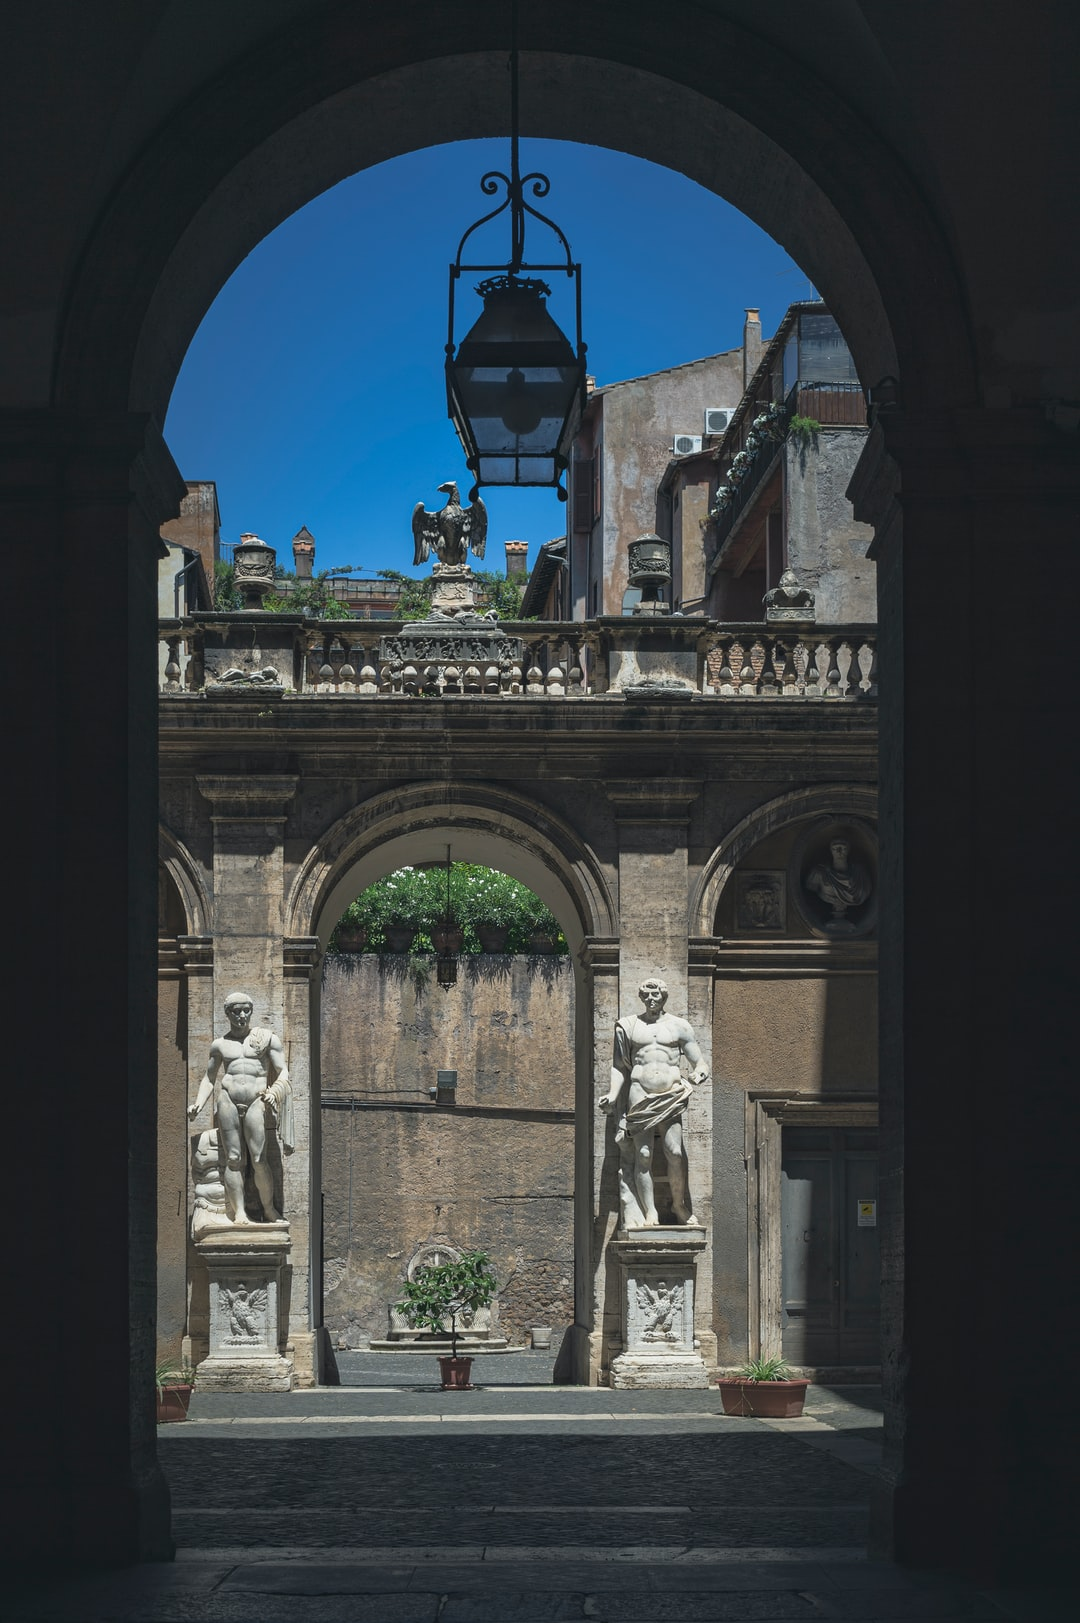 Inner courtyard with sculptures.